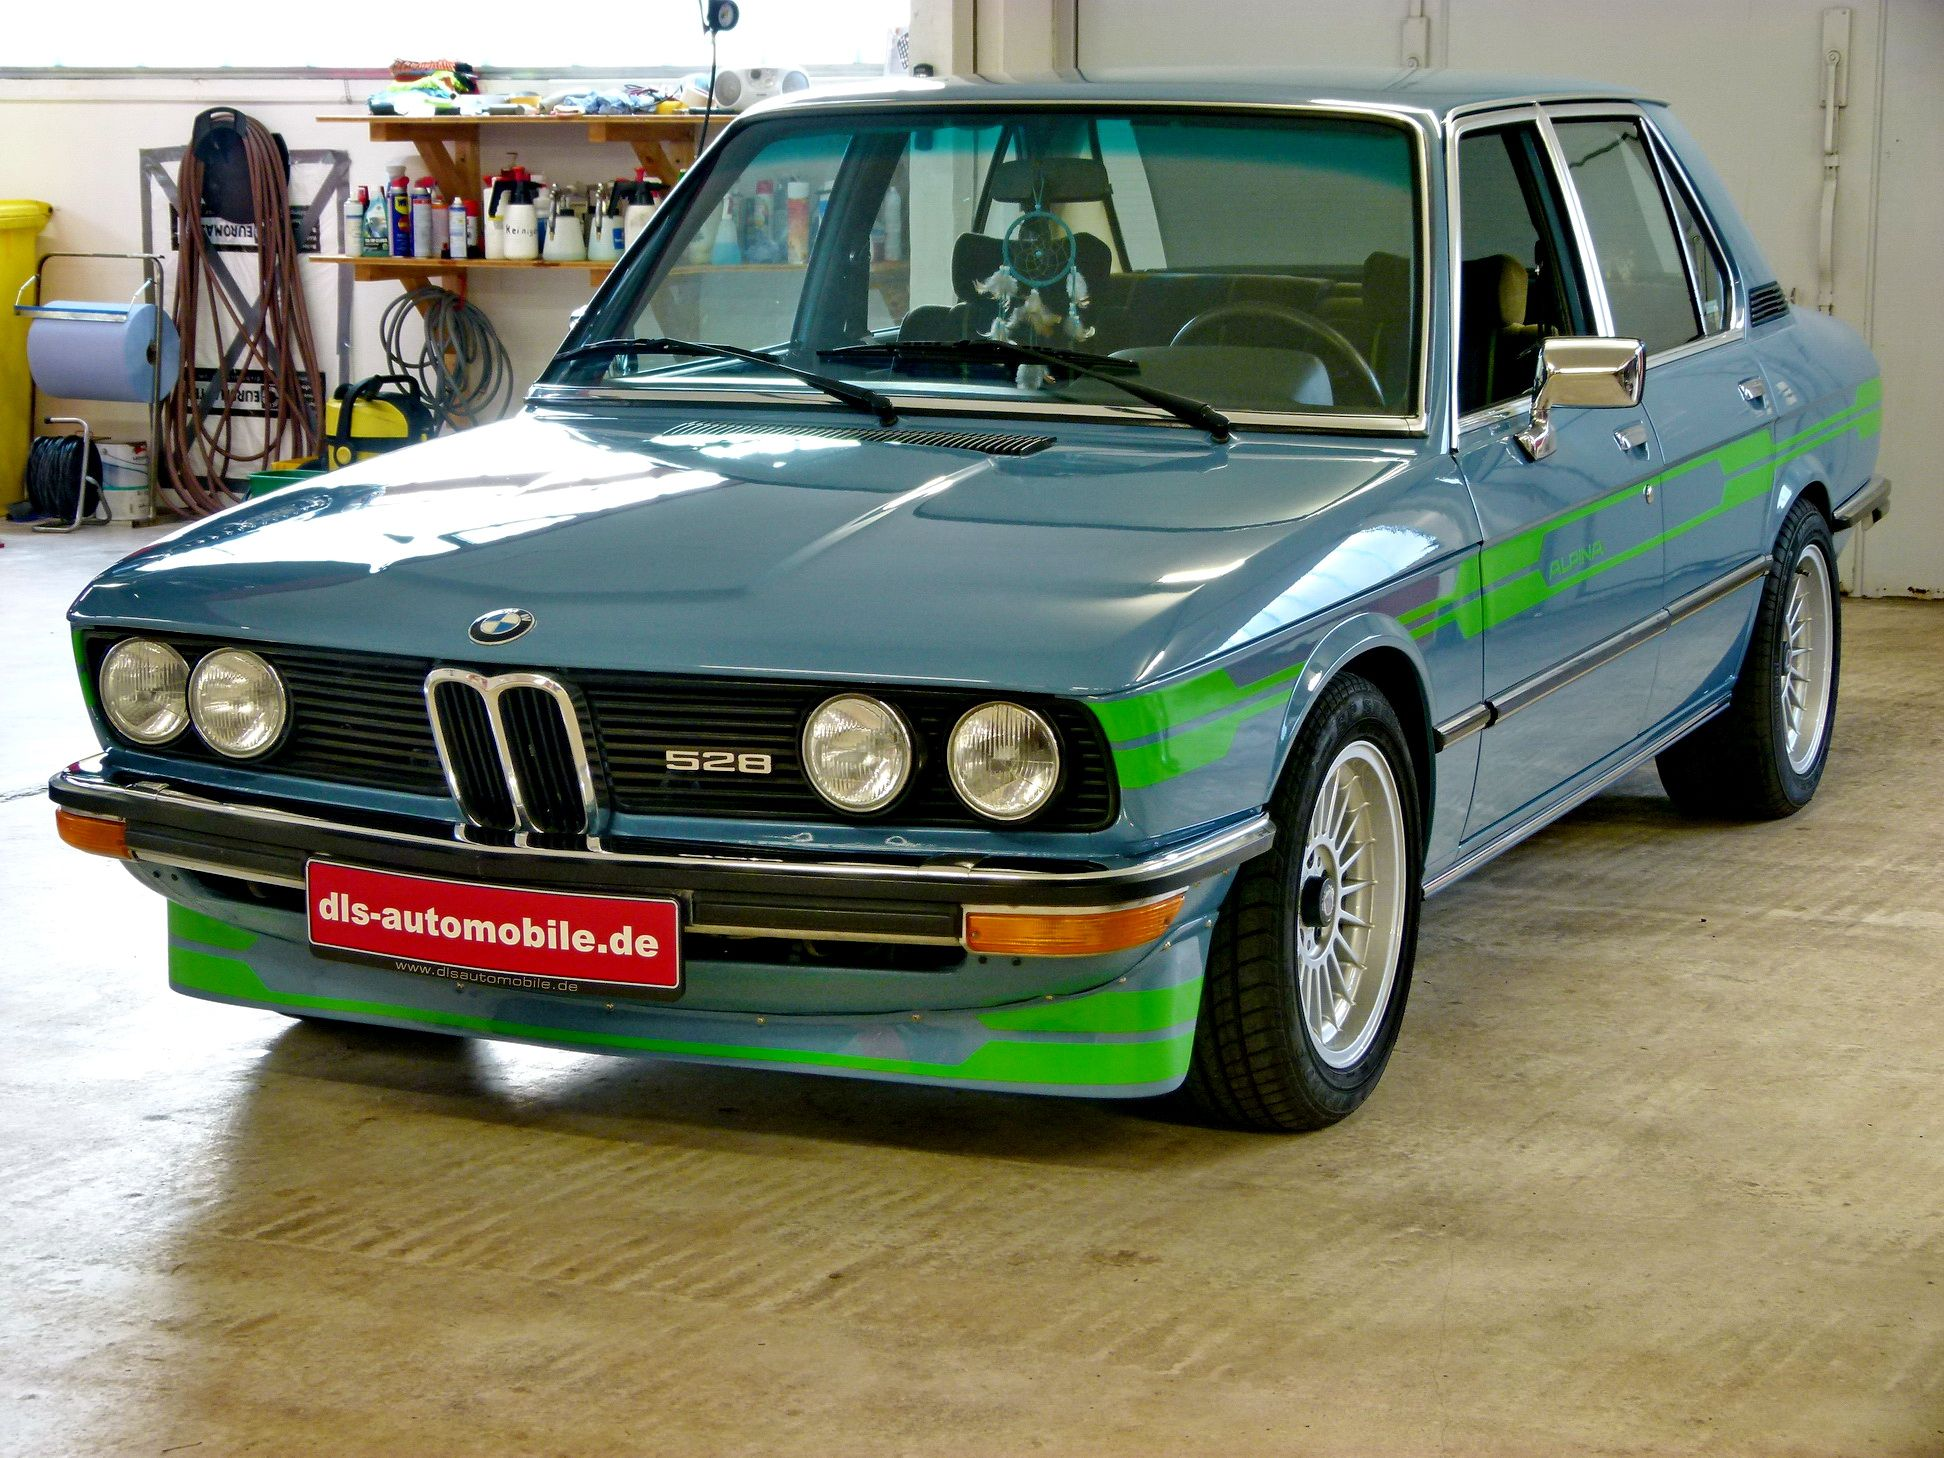 Bmw E12 528 Engine Pinterest Alpina And Automobile 5 Series